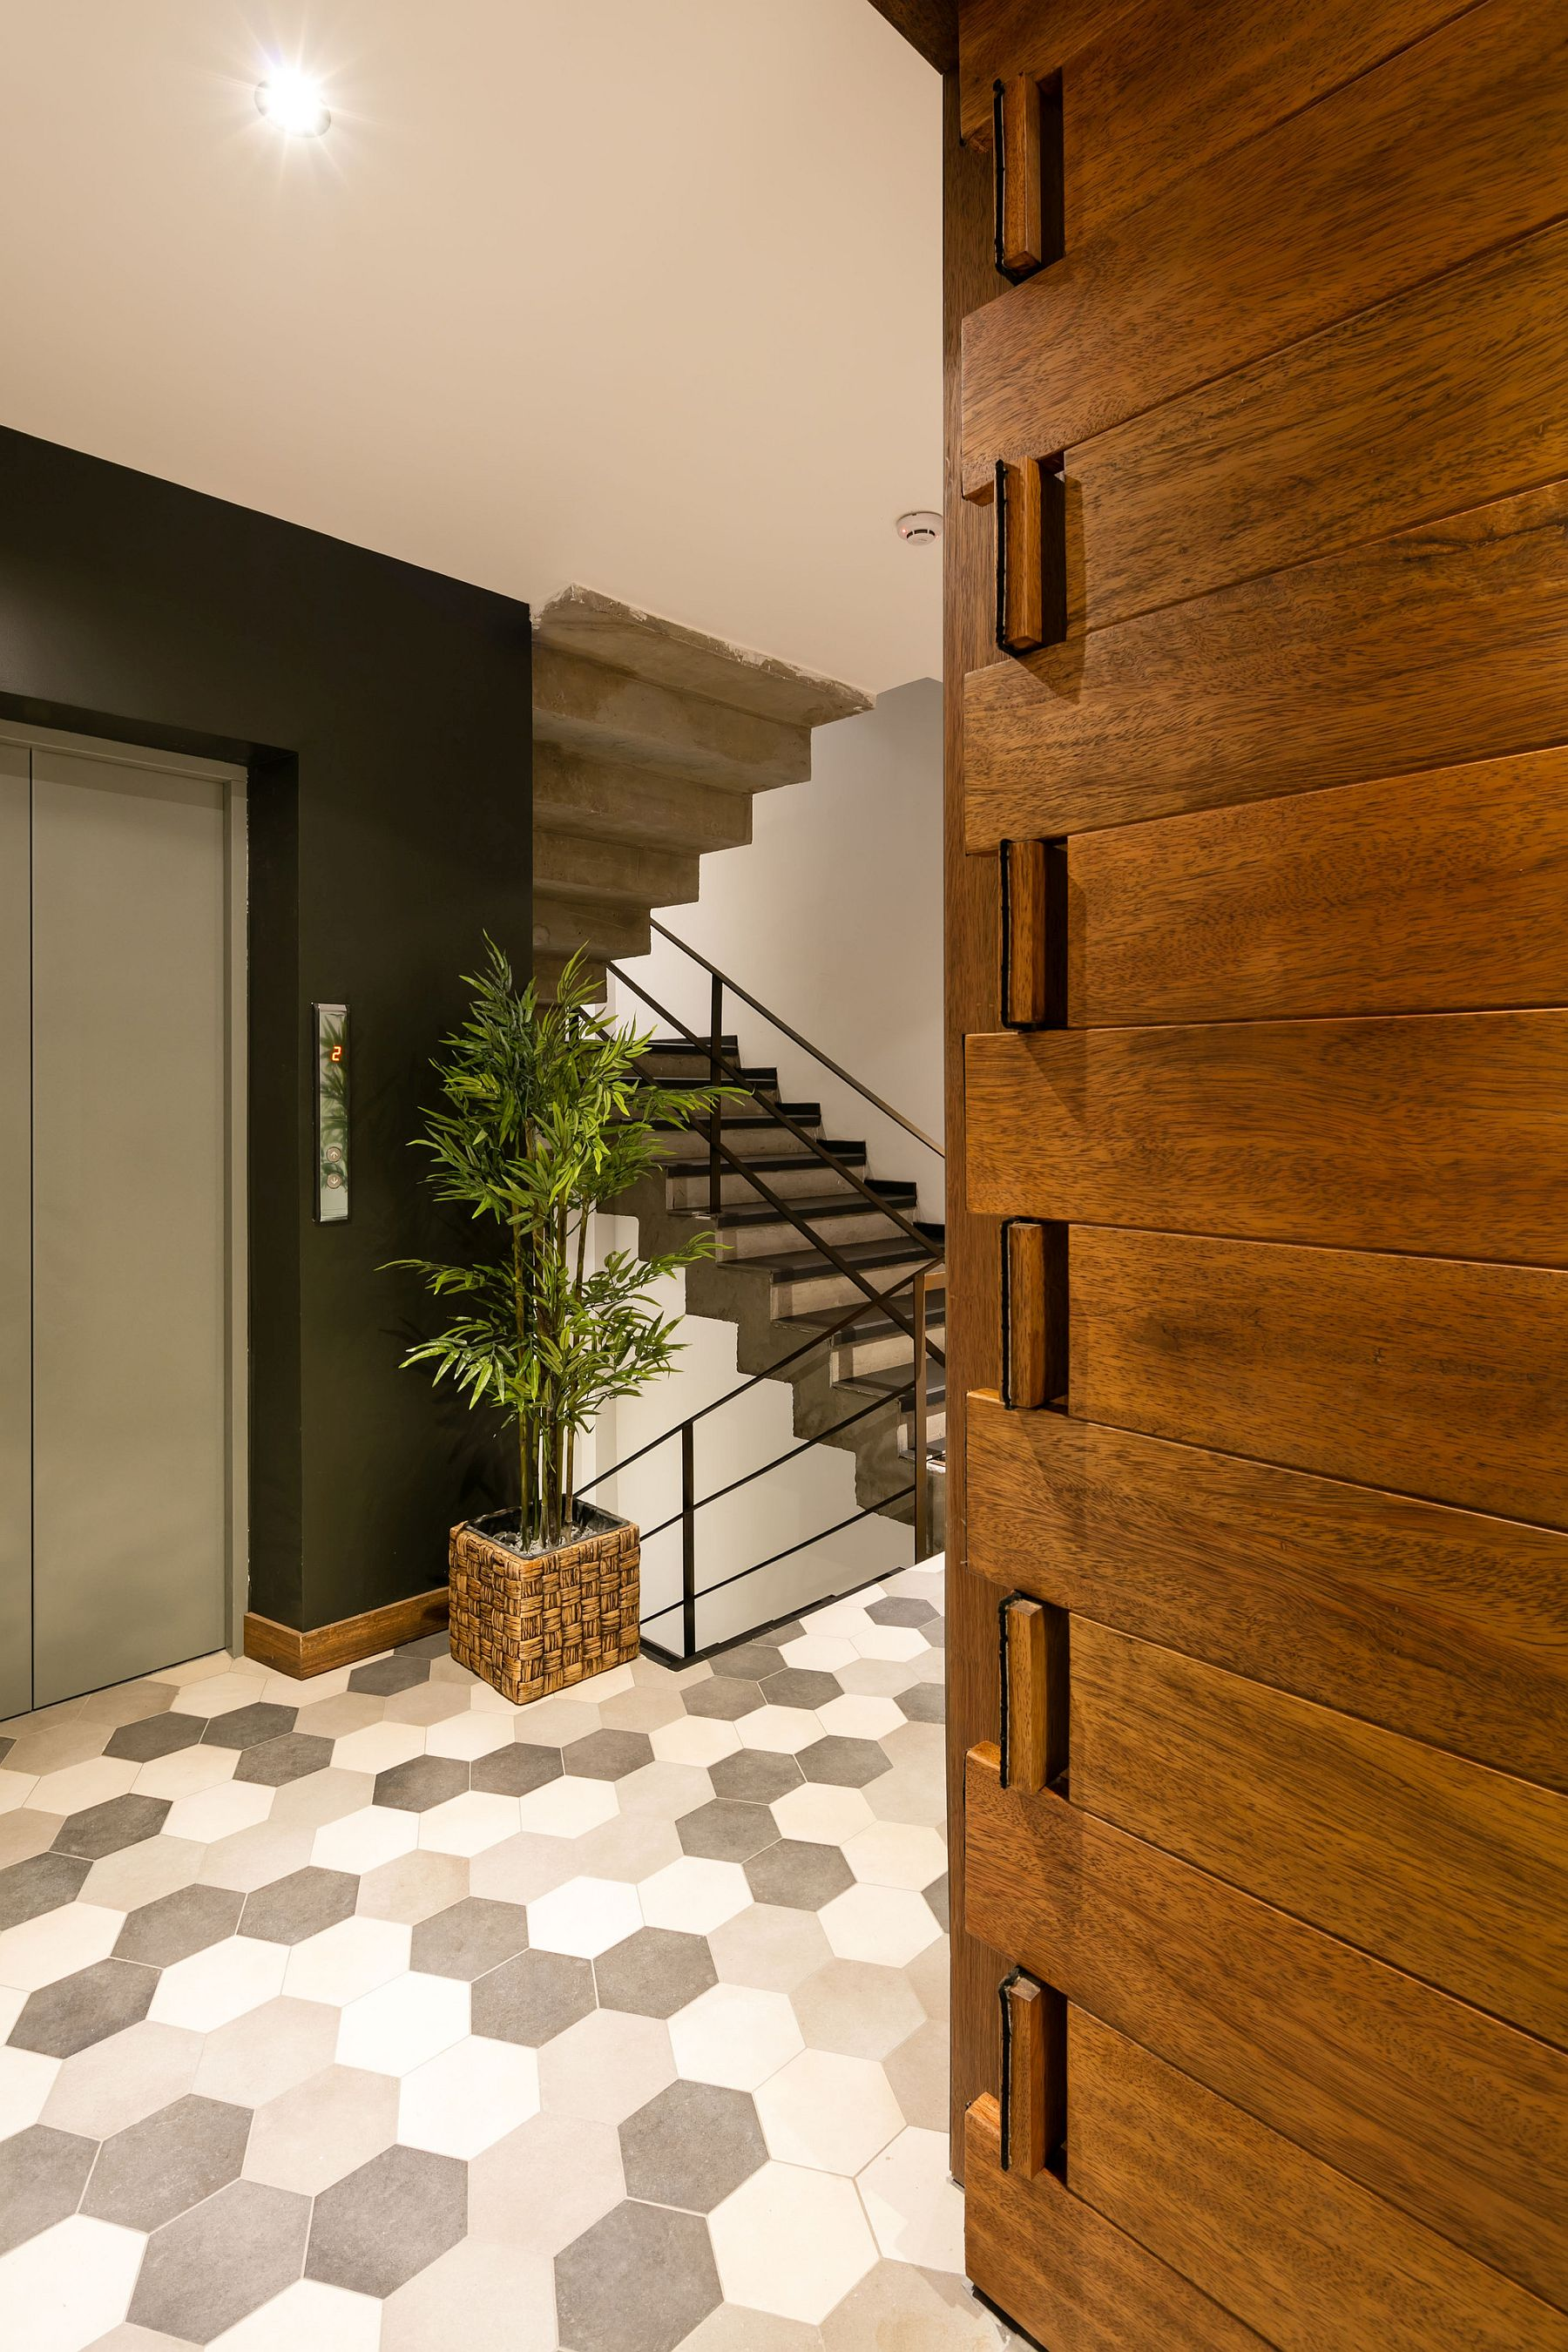 A look at the interior of the Apartment Building in Ecuador